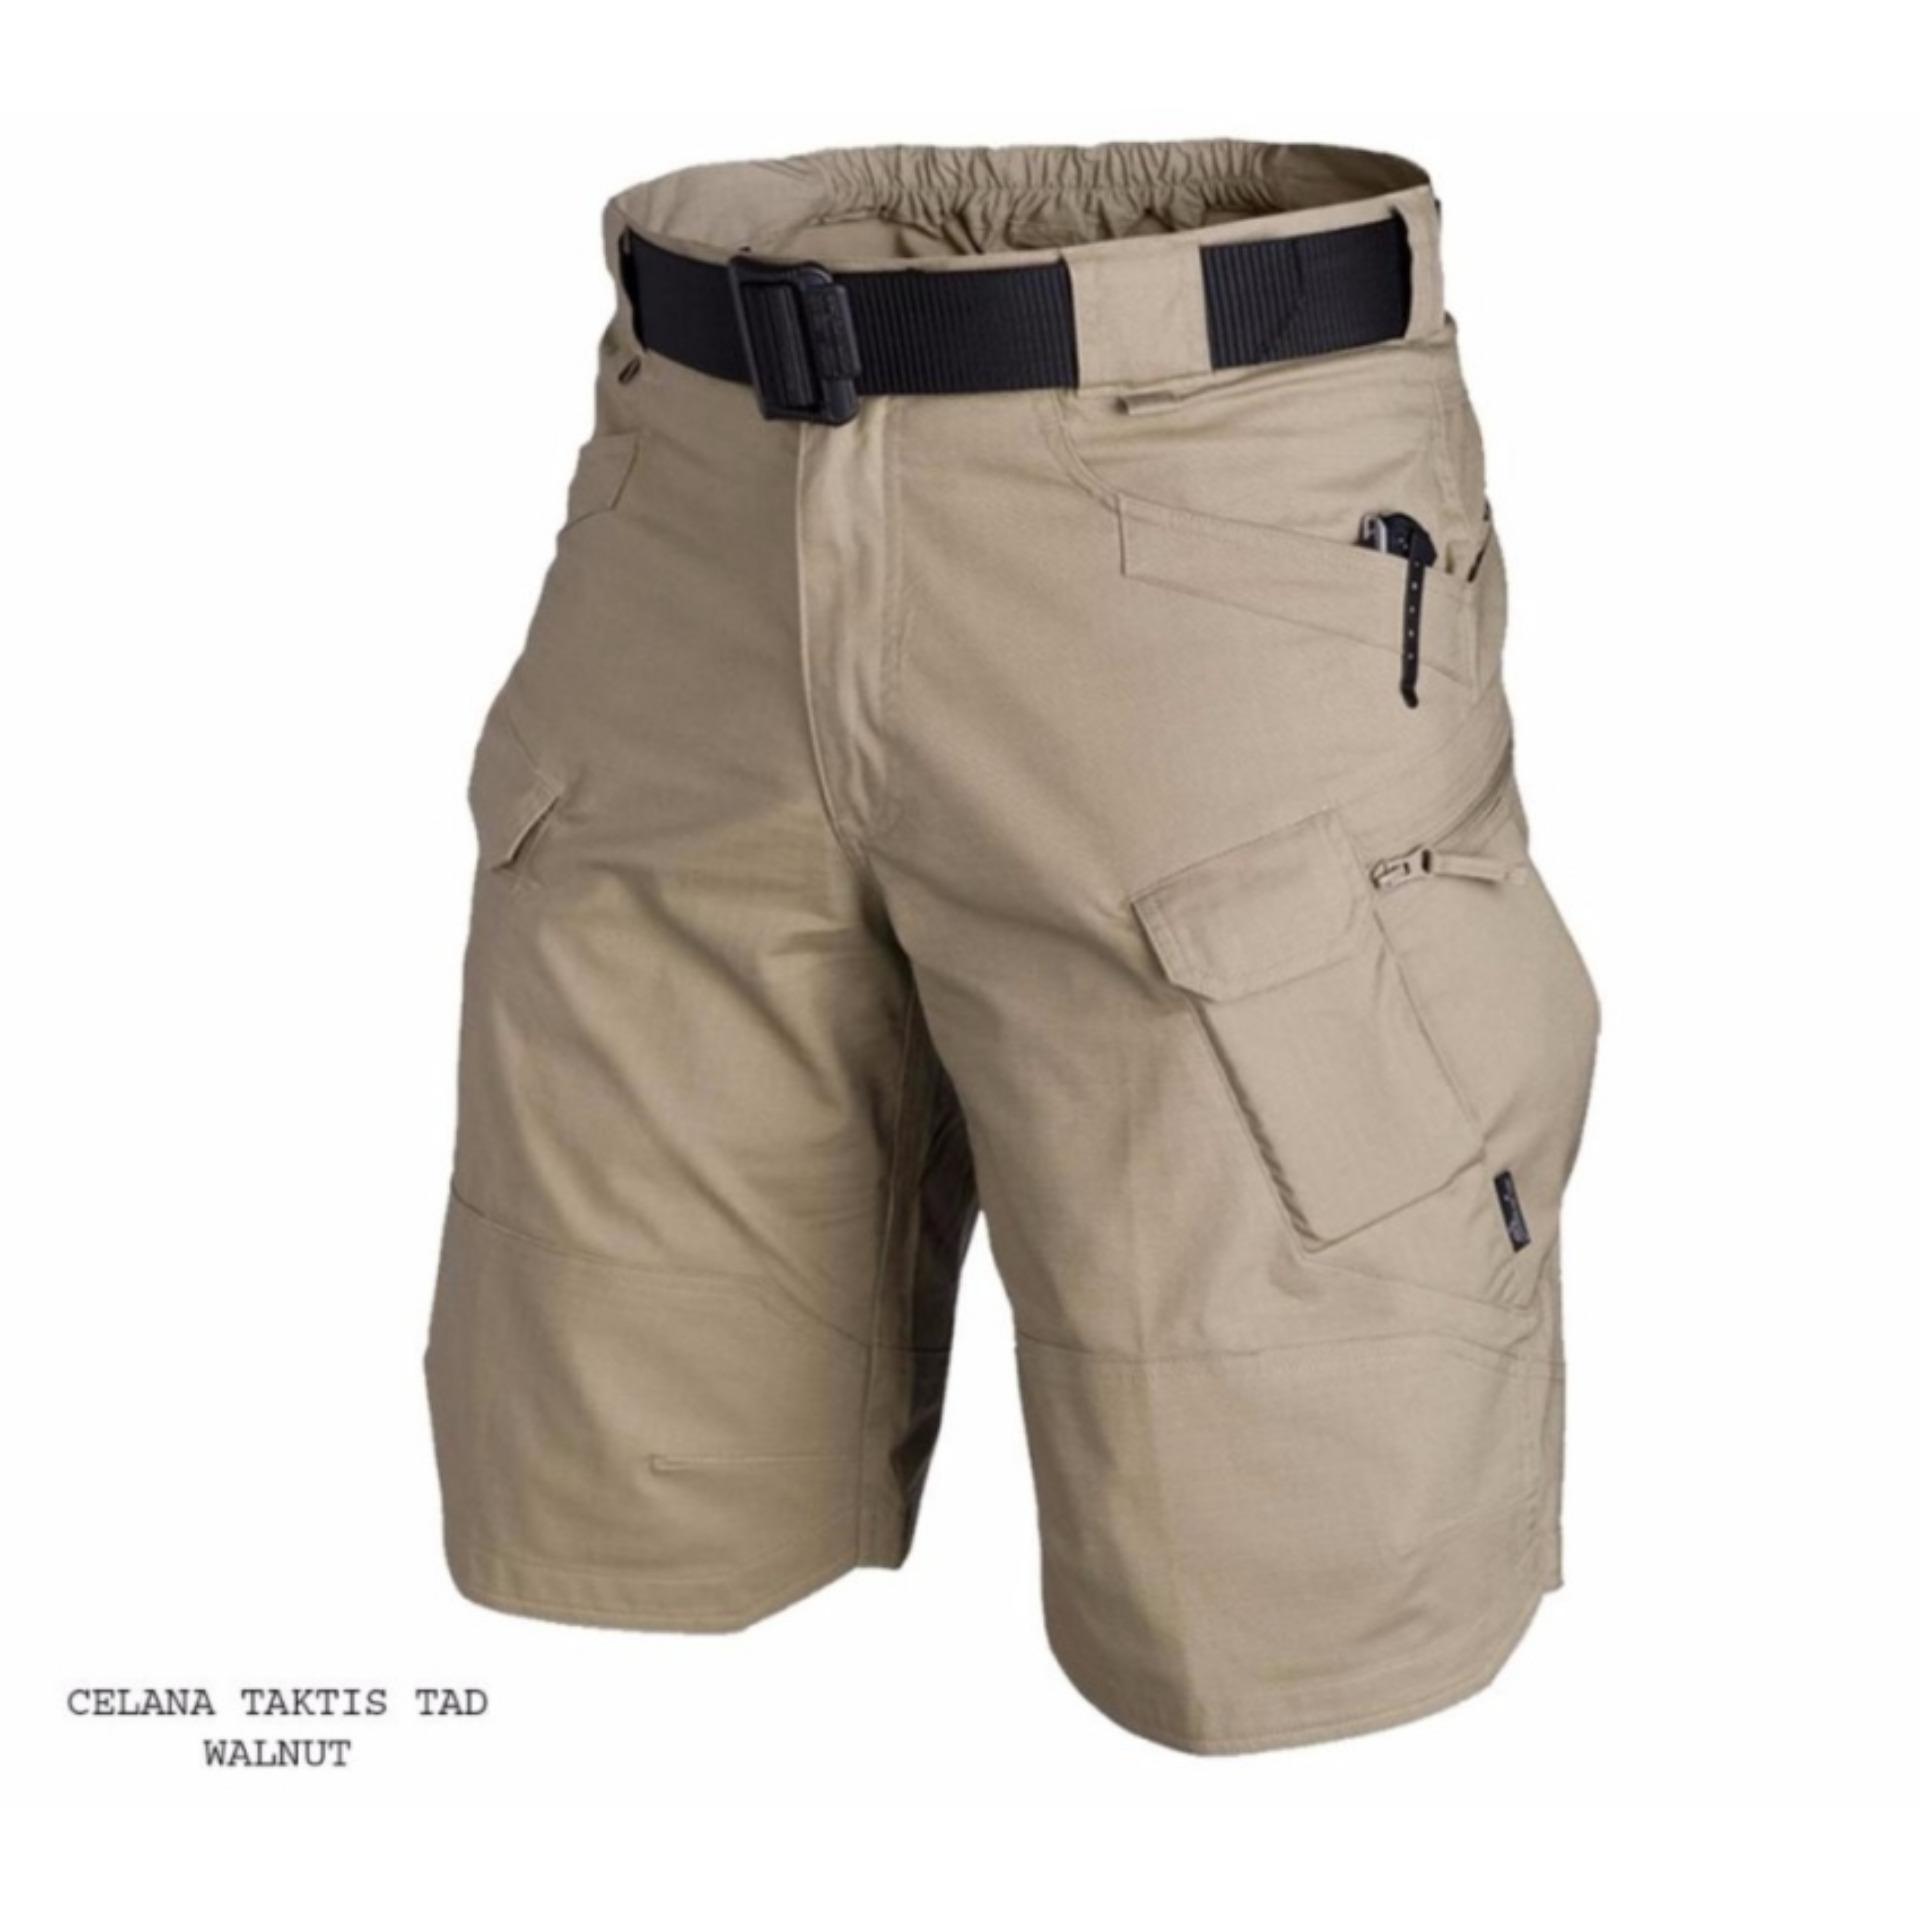 TjinCollection-Celana Tactical Blackhawk Pendek PDL Kargo ShortPants [Krem-Abu-Hitam-Hijau]